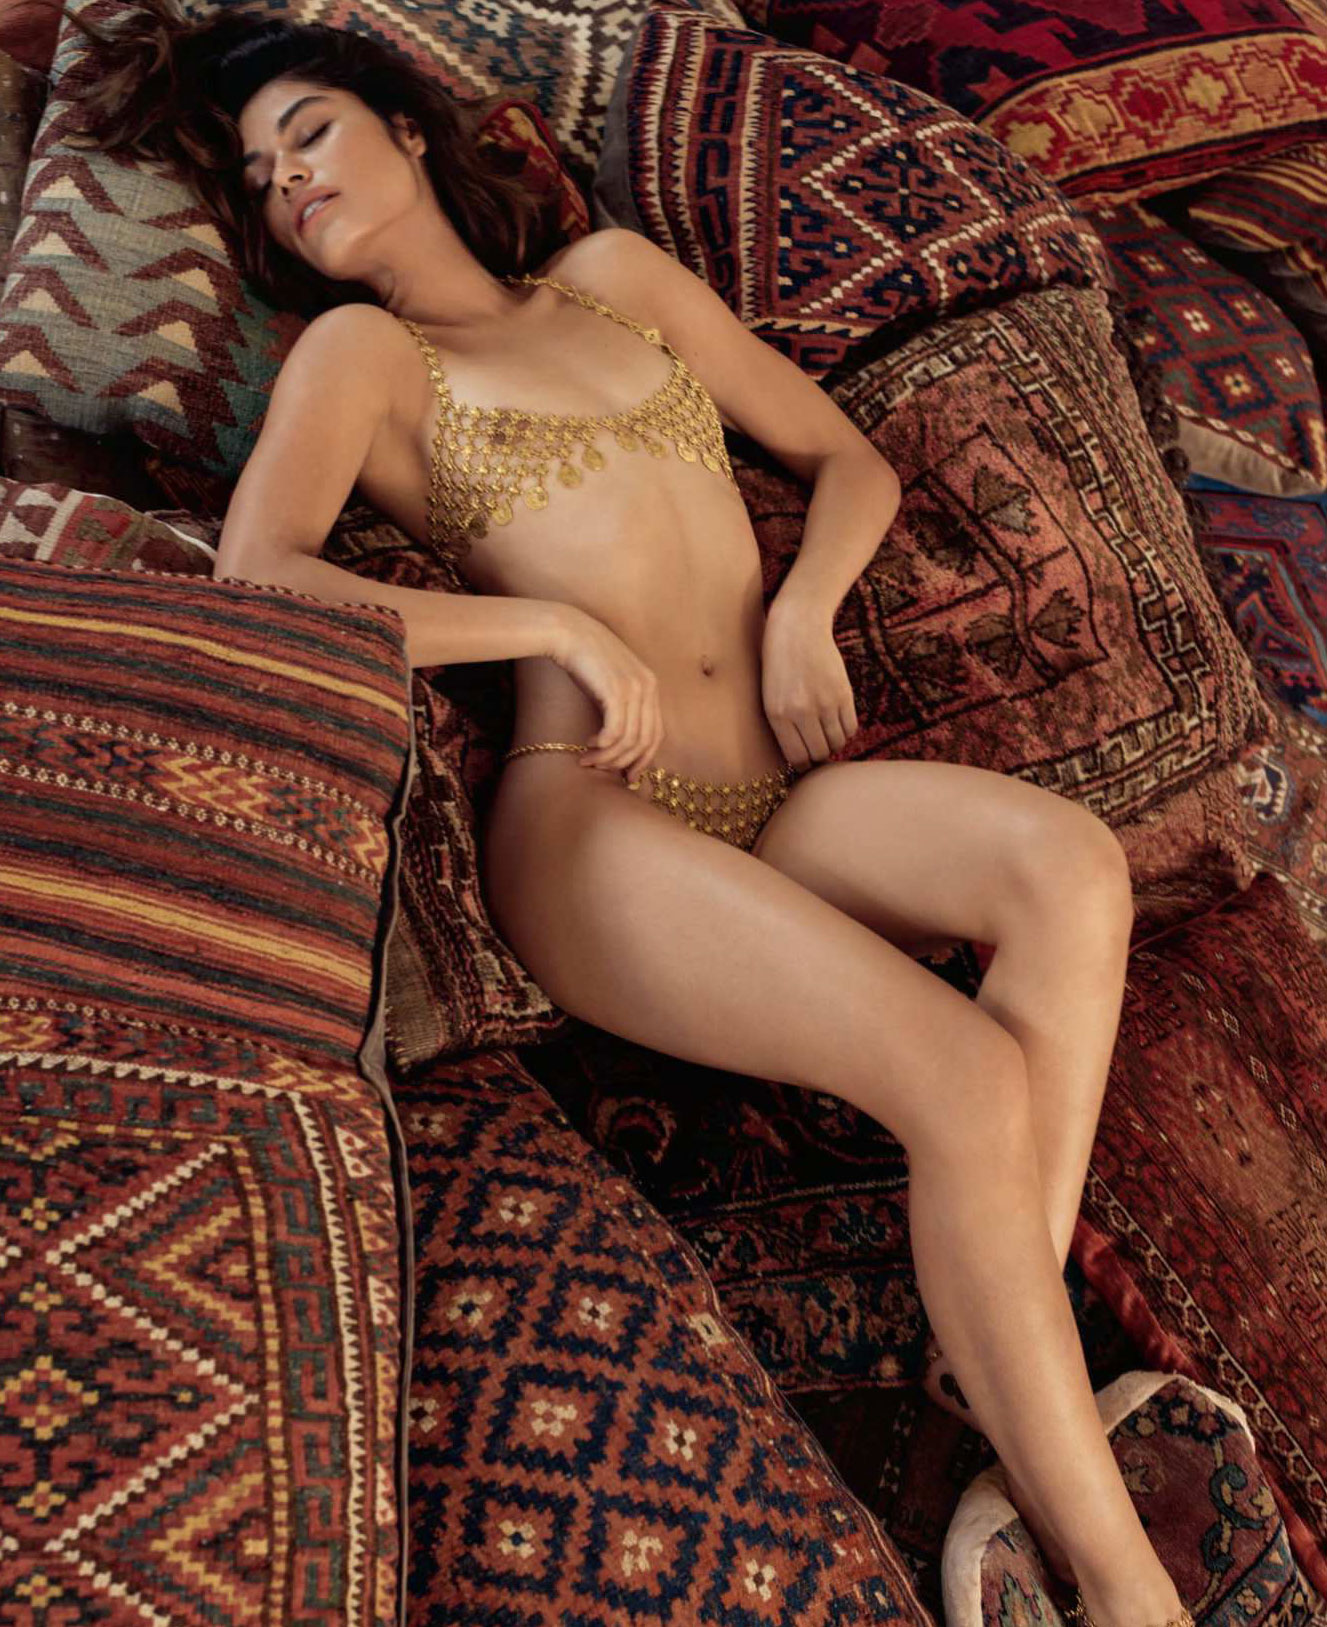 Playmate of the Month of August / Lorena Medina by Christopher von Steinbach - Playboy july/august 2018